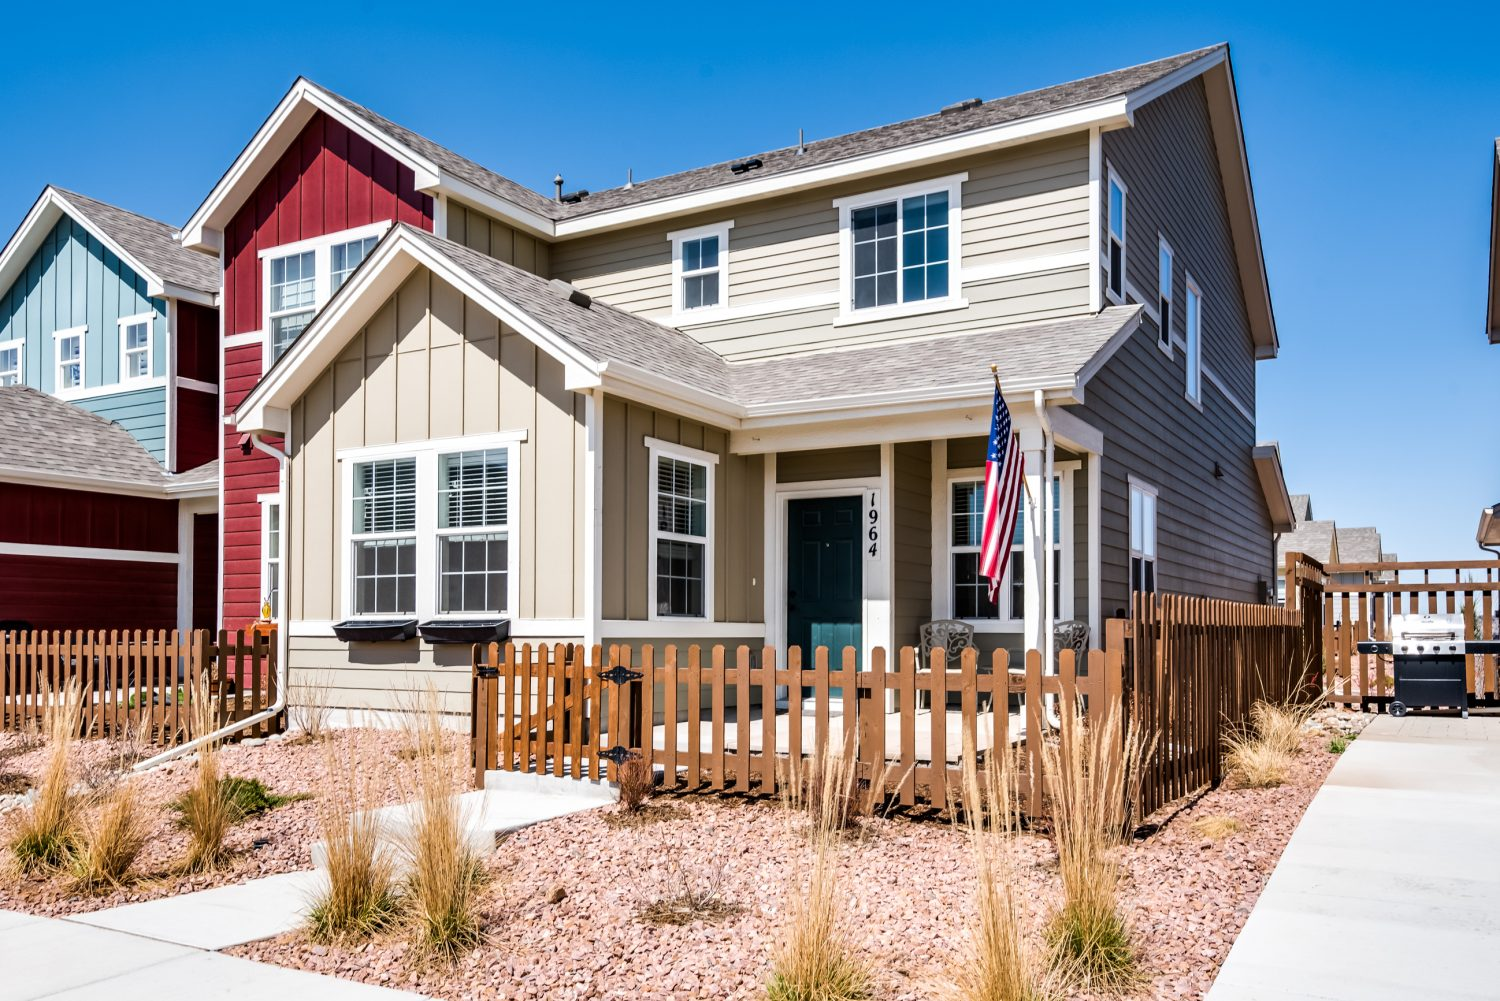 Colorado Springs House with Xeriscaping